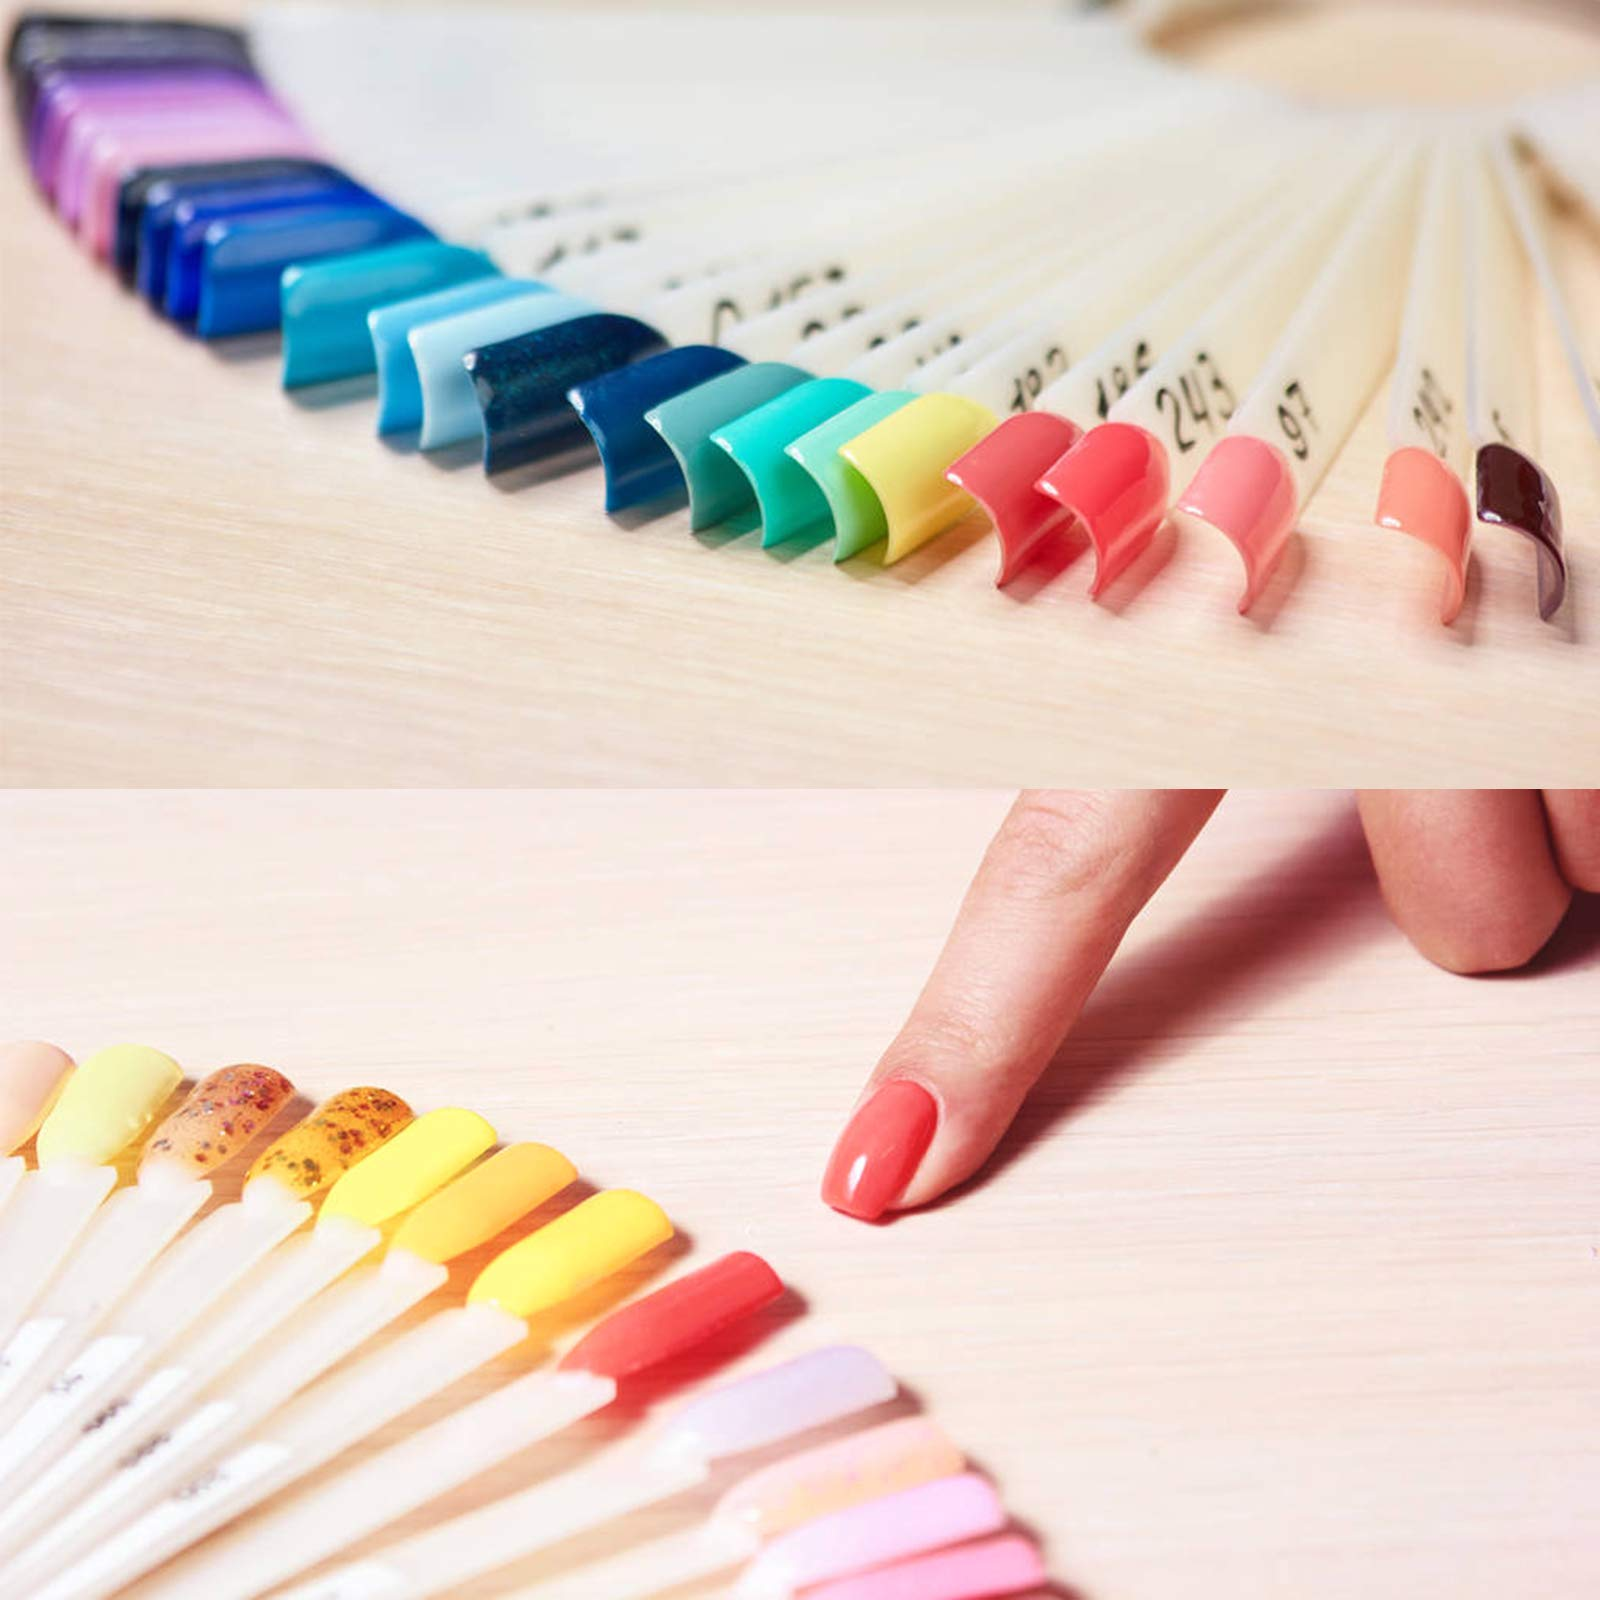 ZERHOK Nail Art Tips Fan 200 Pcs Nail Polish Display Board Swatches Sticks Salon Practice Tools Color Palette with Metal Split Ring Holder